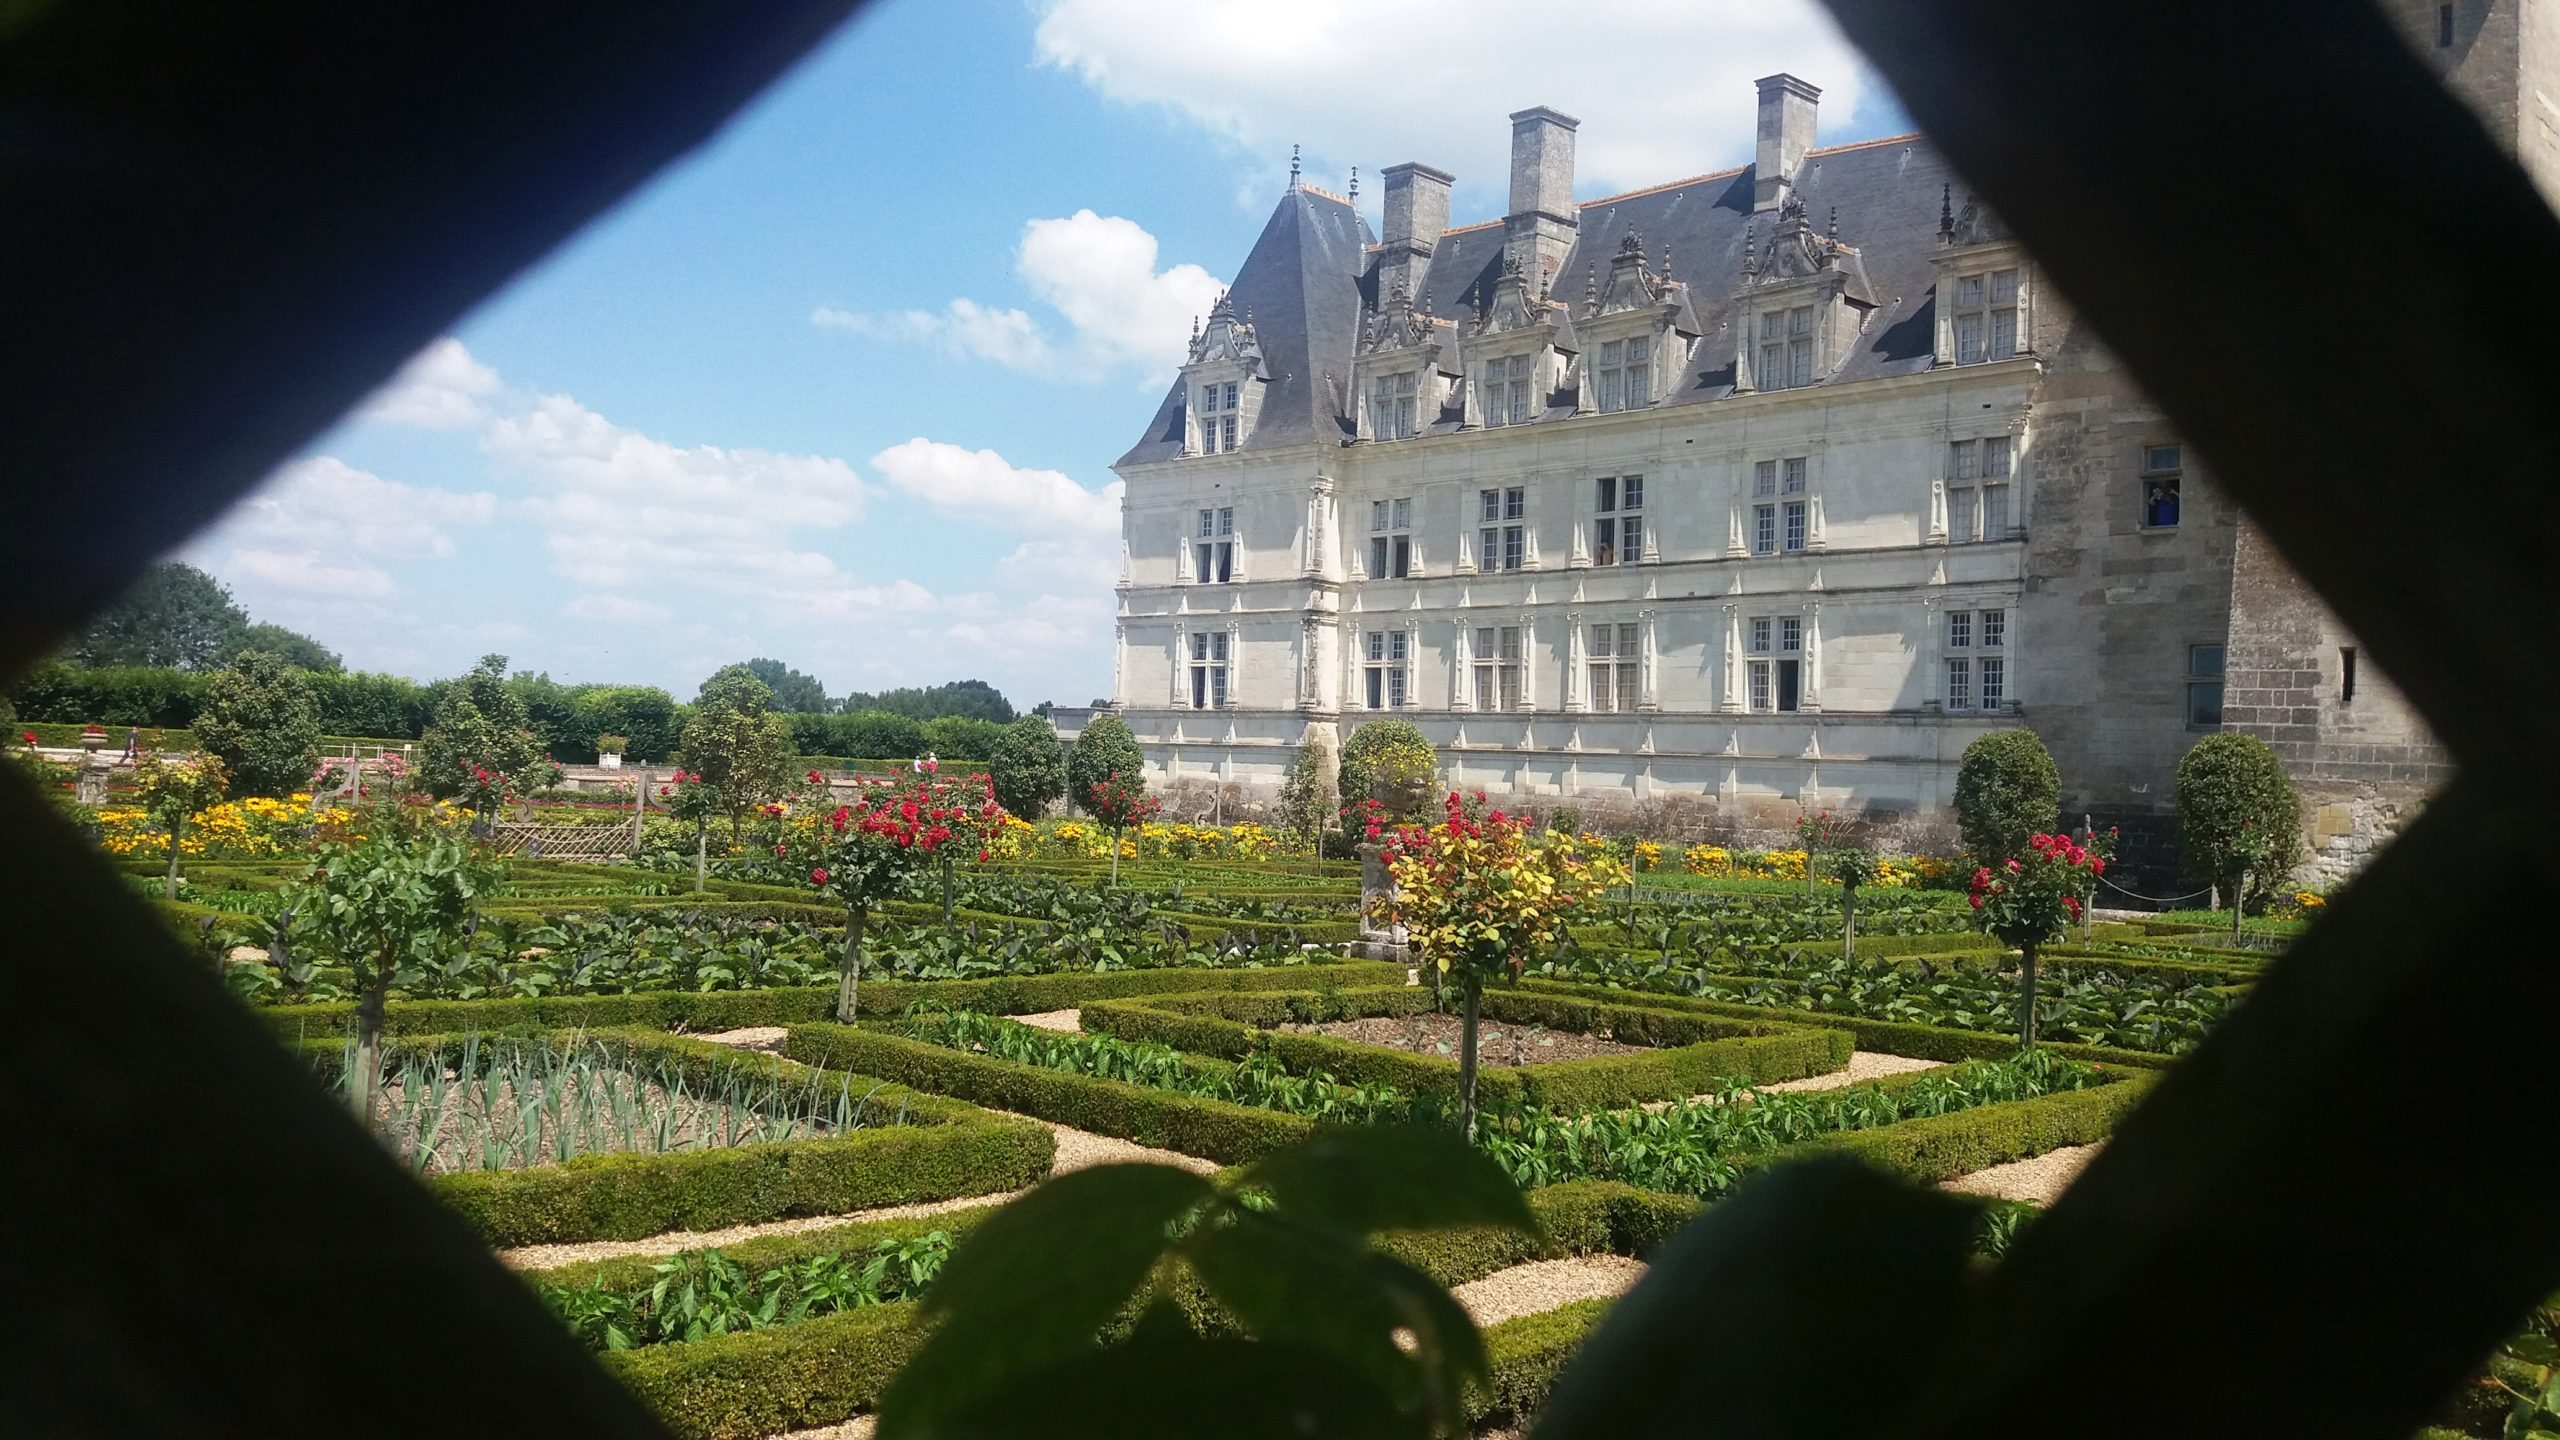 Ten charming museums and castles around Europe that you can visit with the woman you love